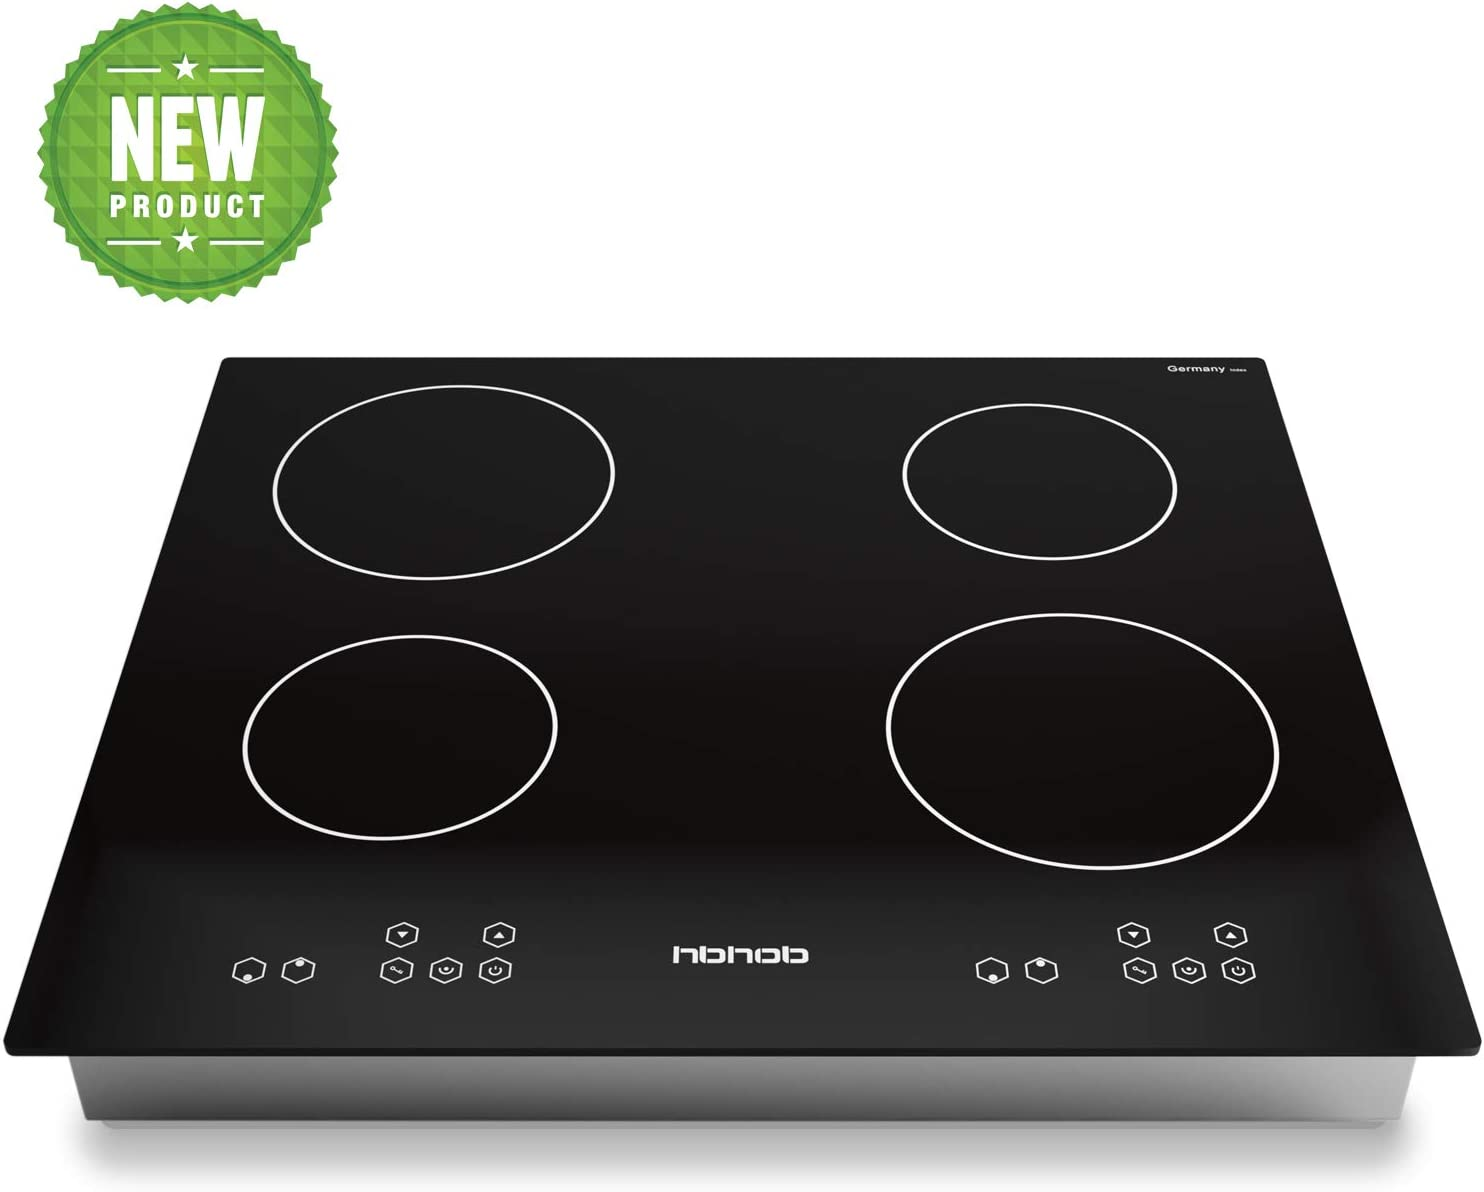 24 Inch Induction Cooktop, Stove Top Electric Cooktop, 4-Burner Electric Induction, Black Vitro Ceramic Smooth Surface Glass Gasland Chef, 220V Electric Induction Cooker, Timer & Safety Lock.